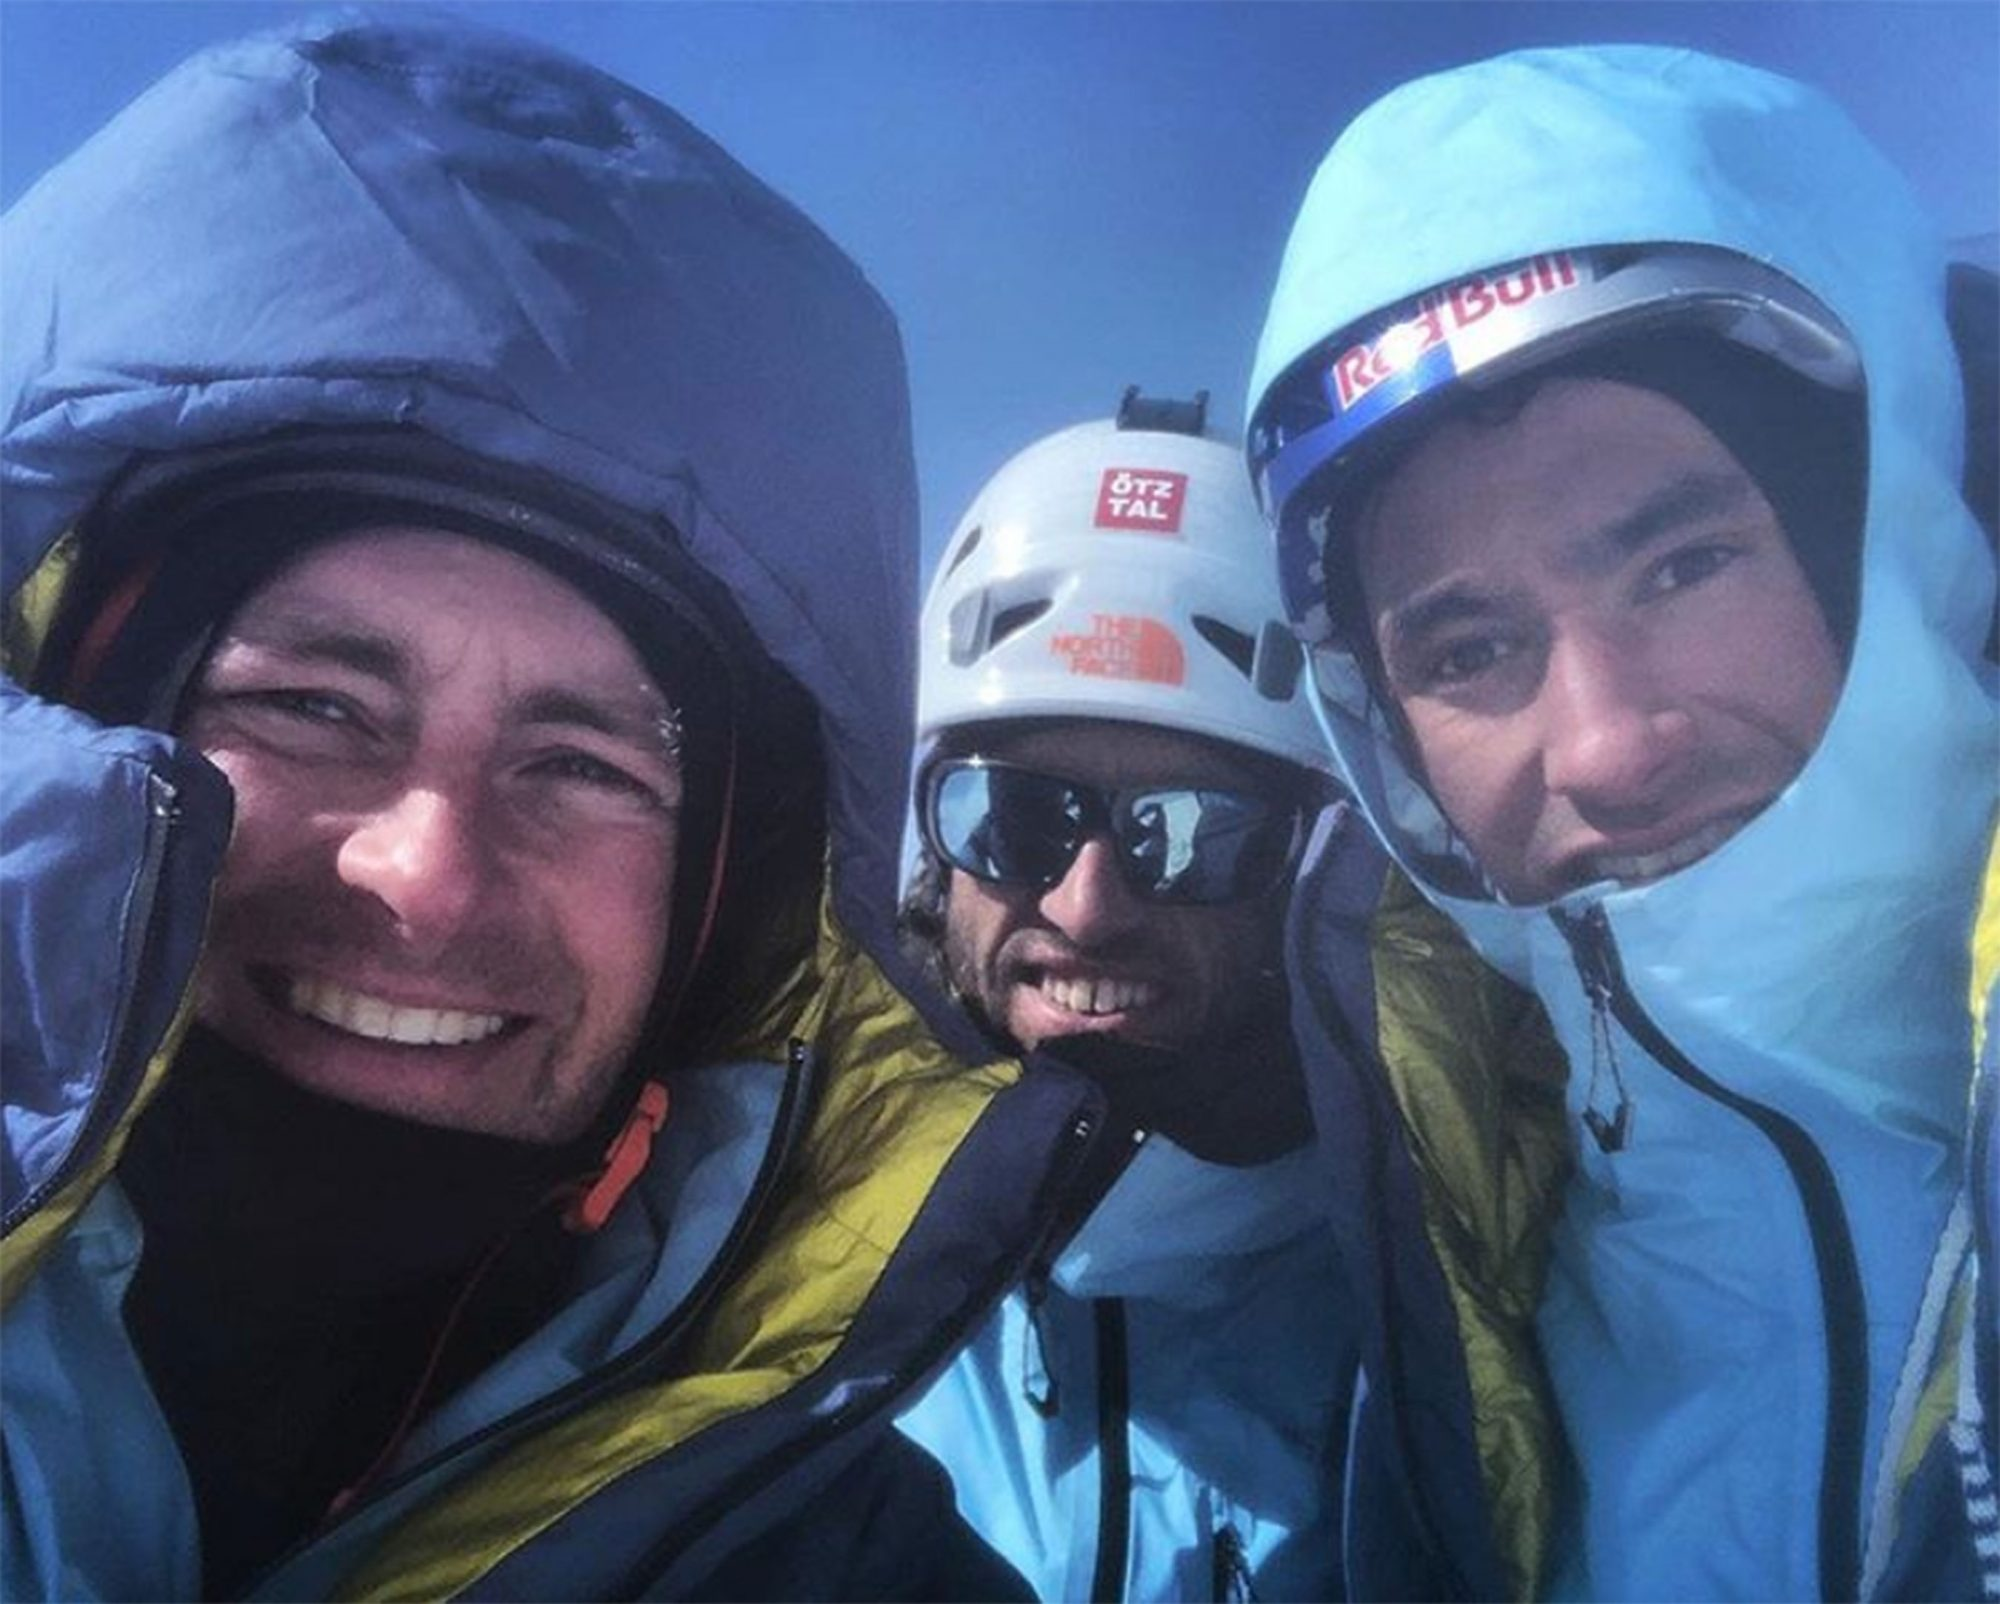 Climbers died in avalanche